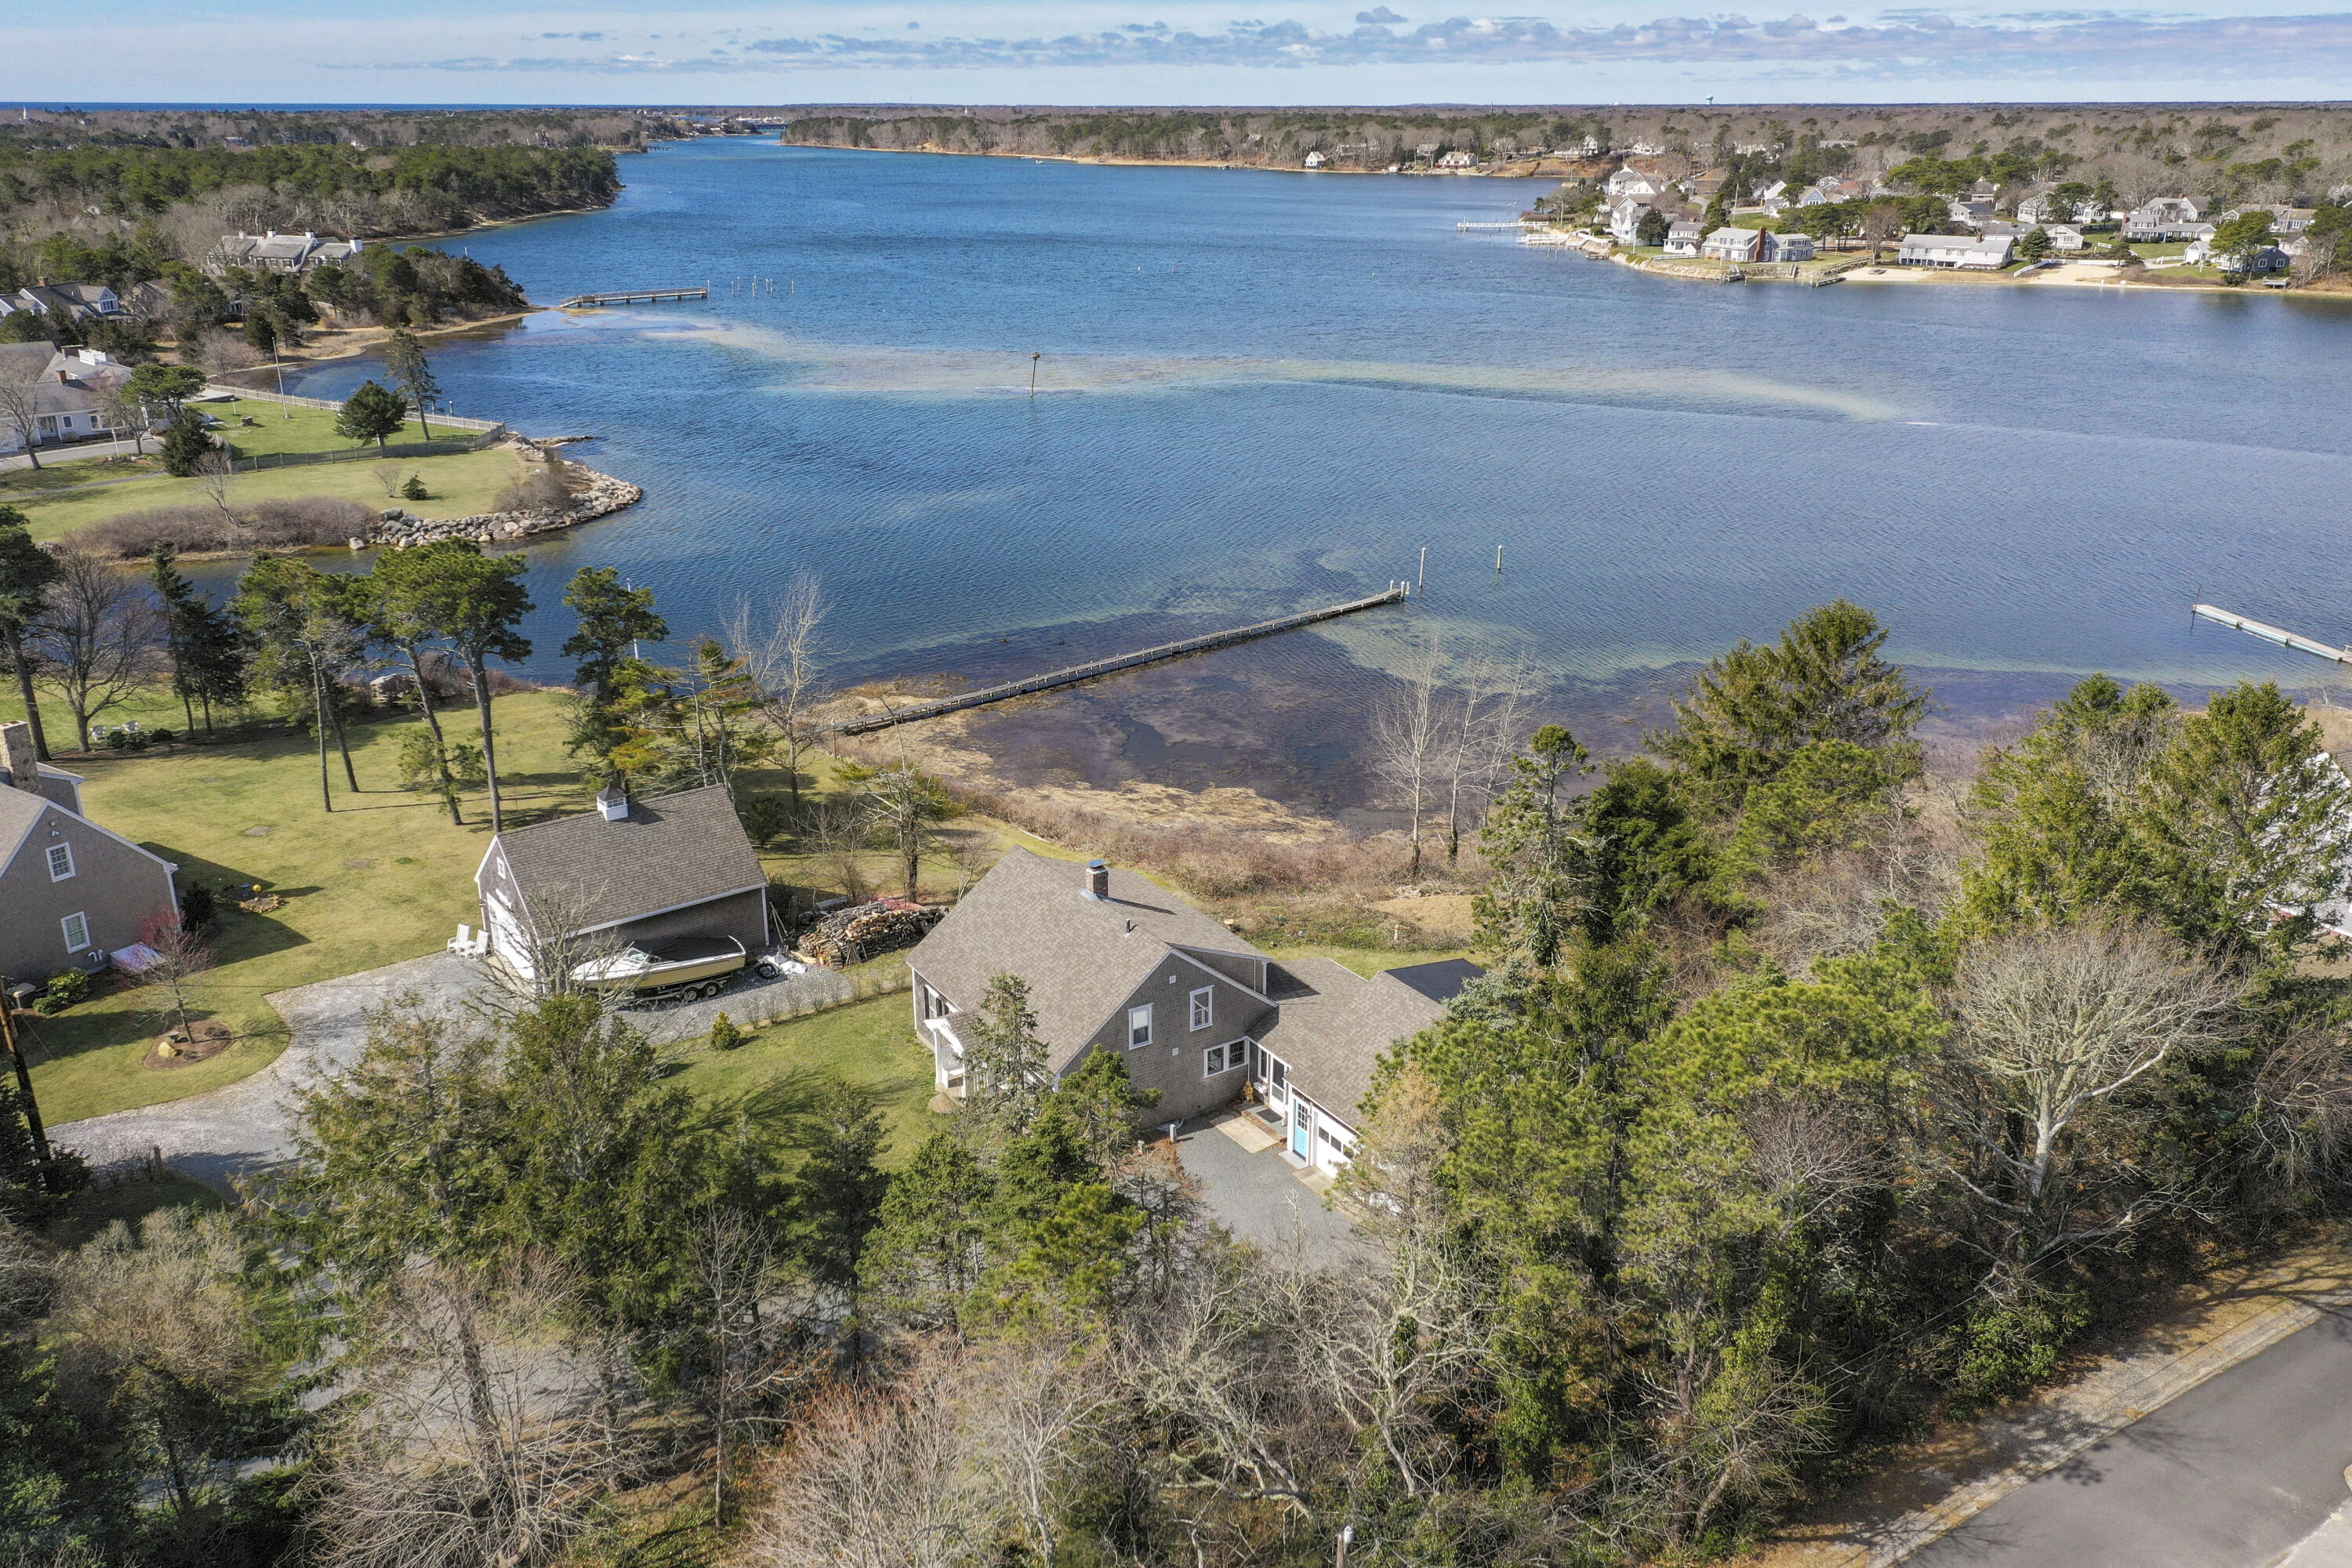 click to view more details 9 Captain Nickerson Lane, South Dennis, MA 02660